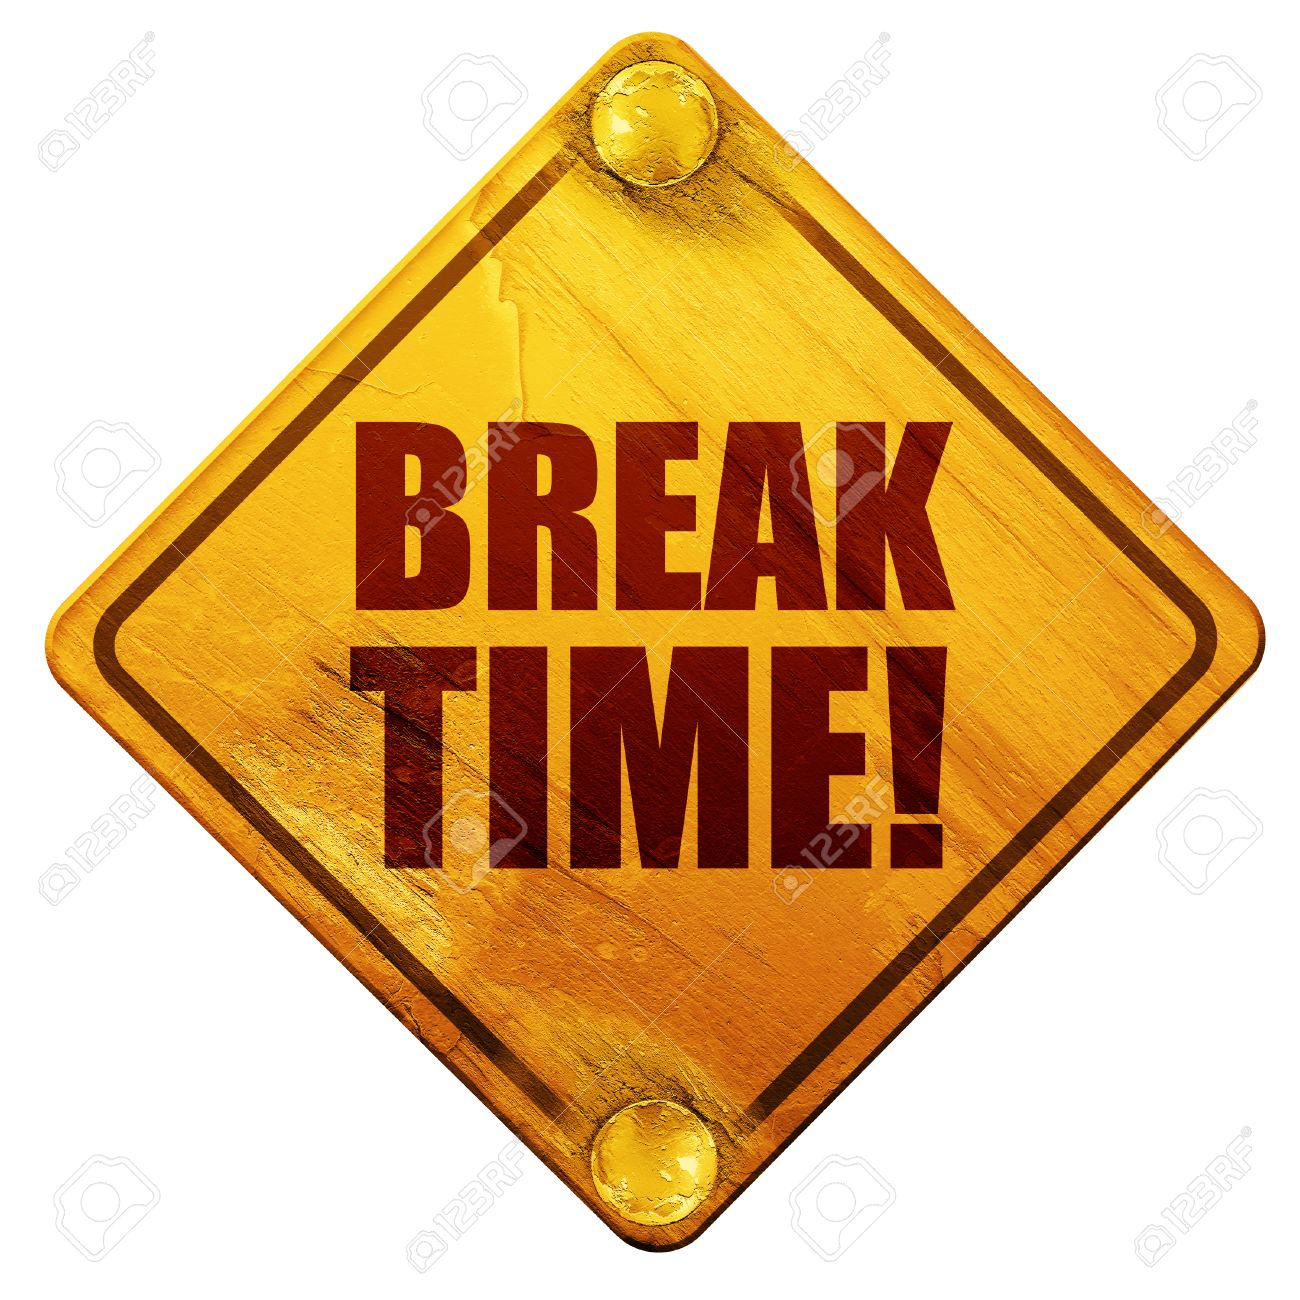 Break Time 3D Rendering Yellow Road Sign On A White Background Stock Photo